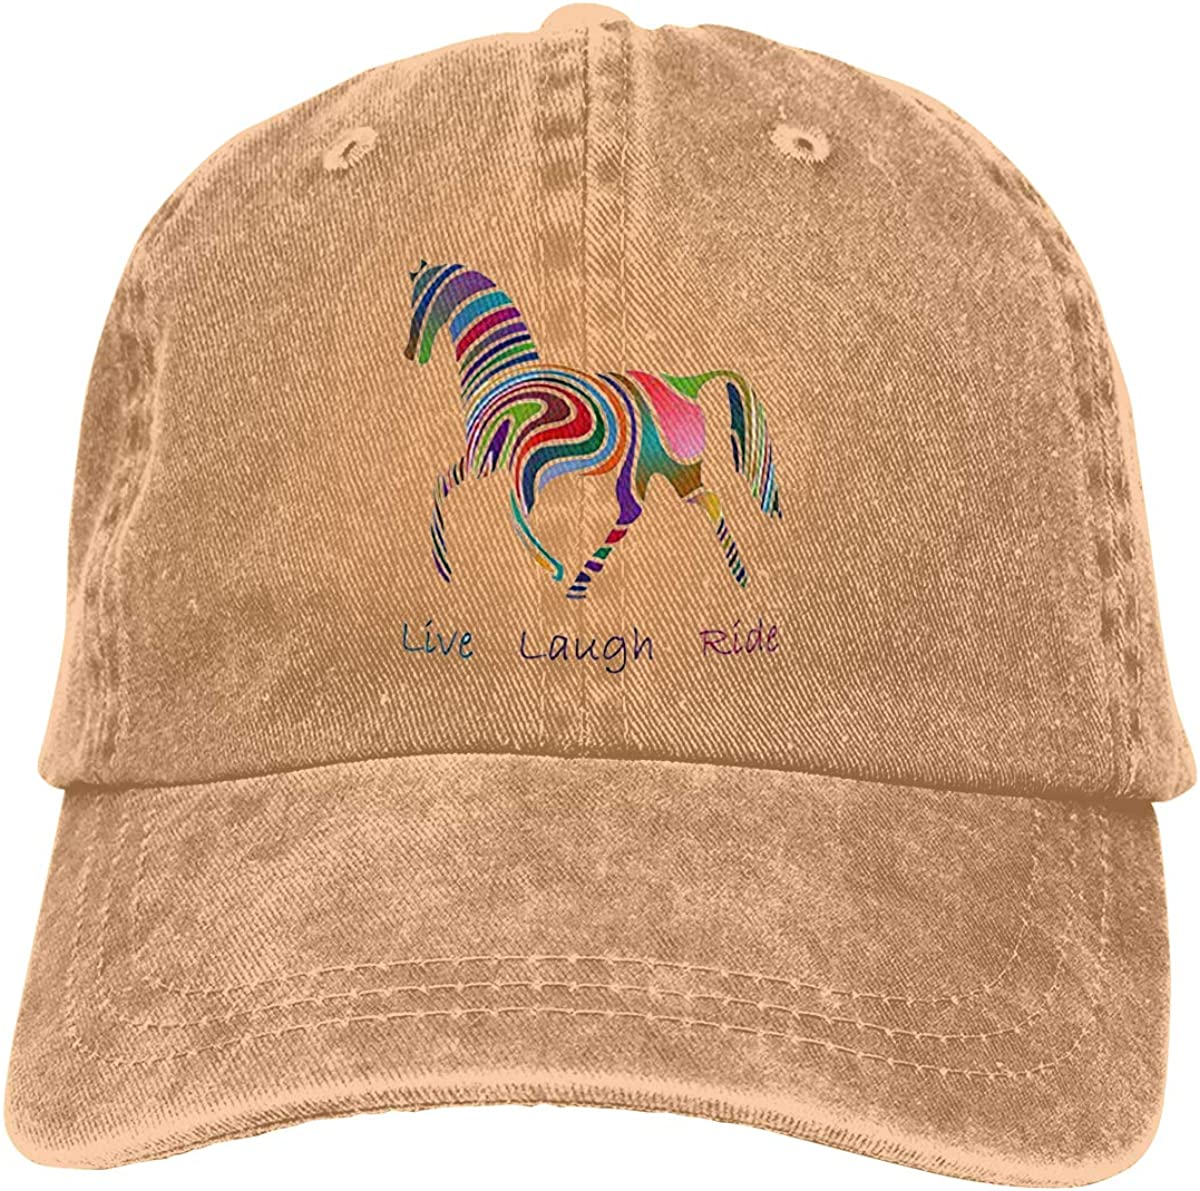 Rainbow Bling Horse Solid Color Baseball Cap Adjustable Cotton Sun Hats Unisex